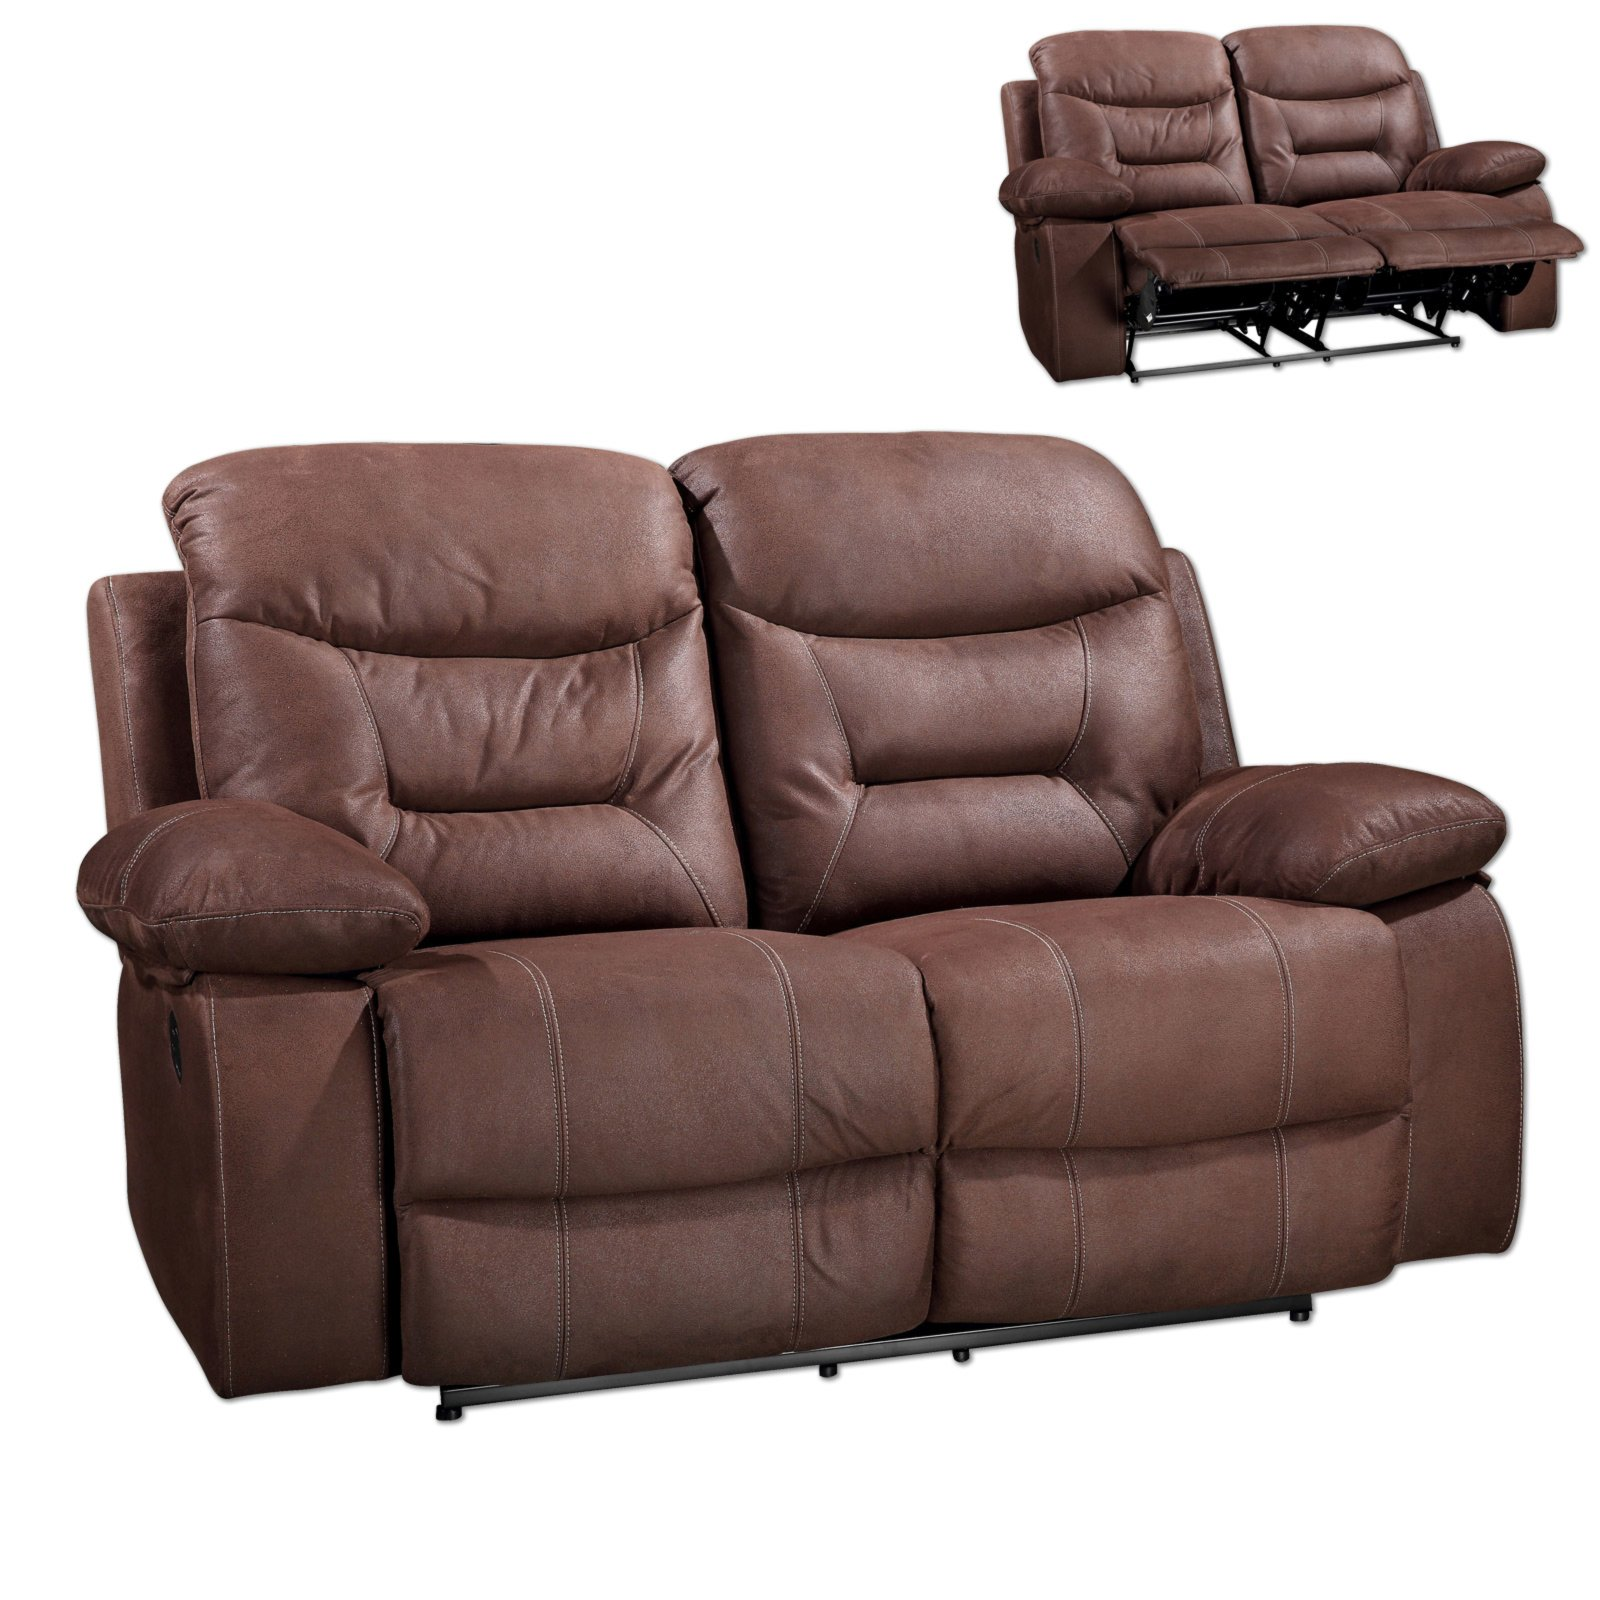 2 sitzer sofa dunkelbraun mit relaxfunktion for 3 sitzer sofa mit relaxfunktion